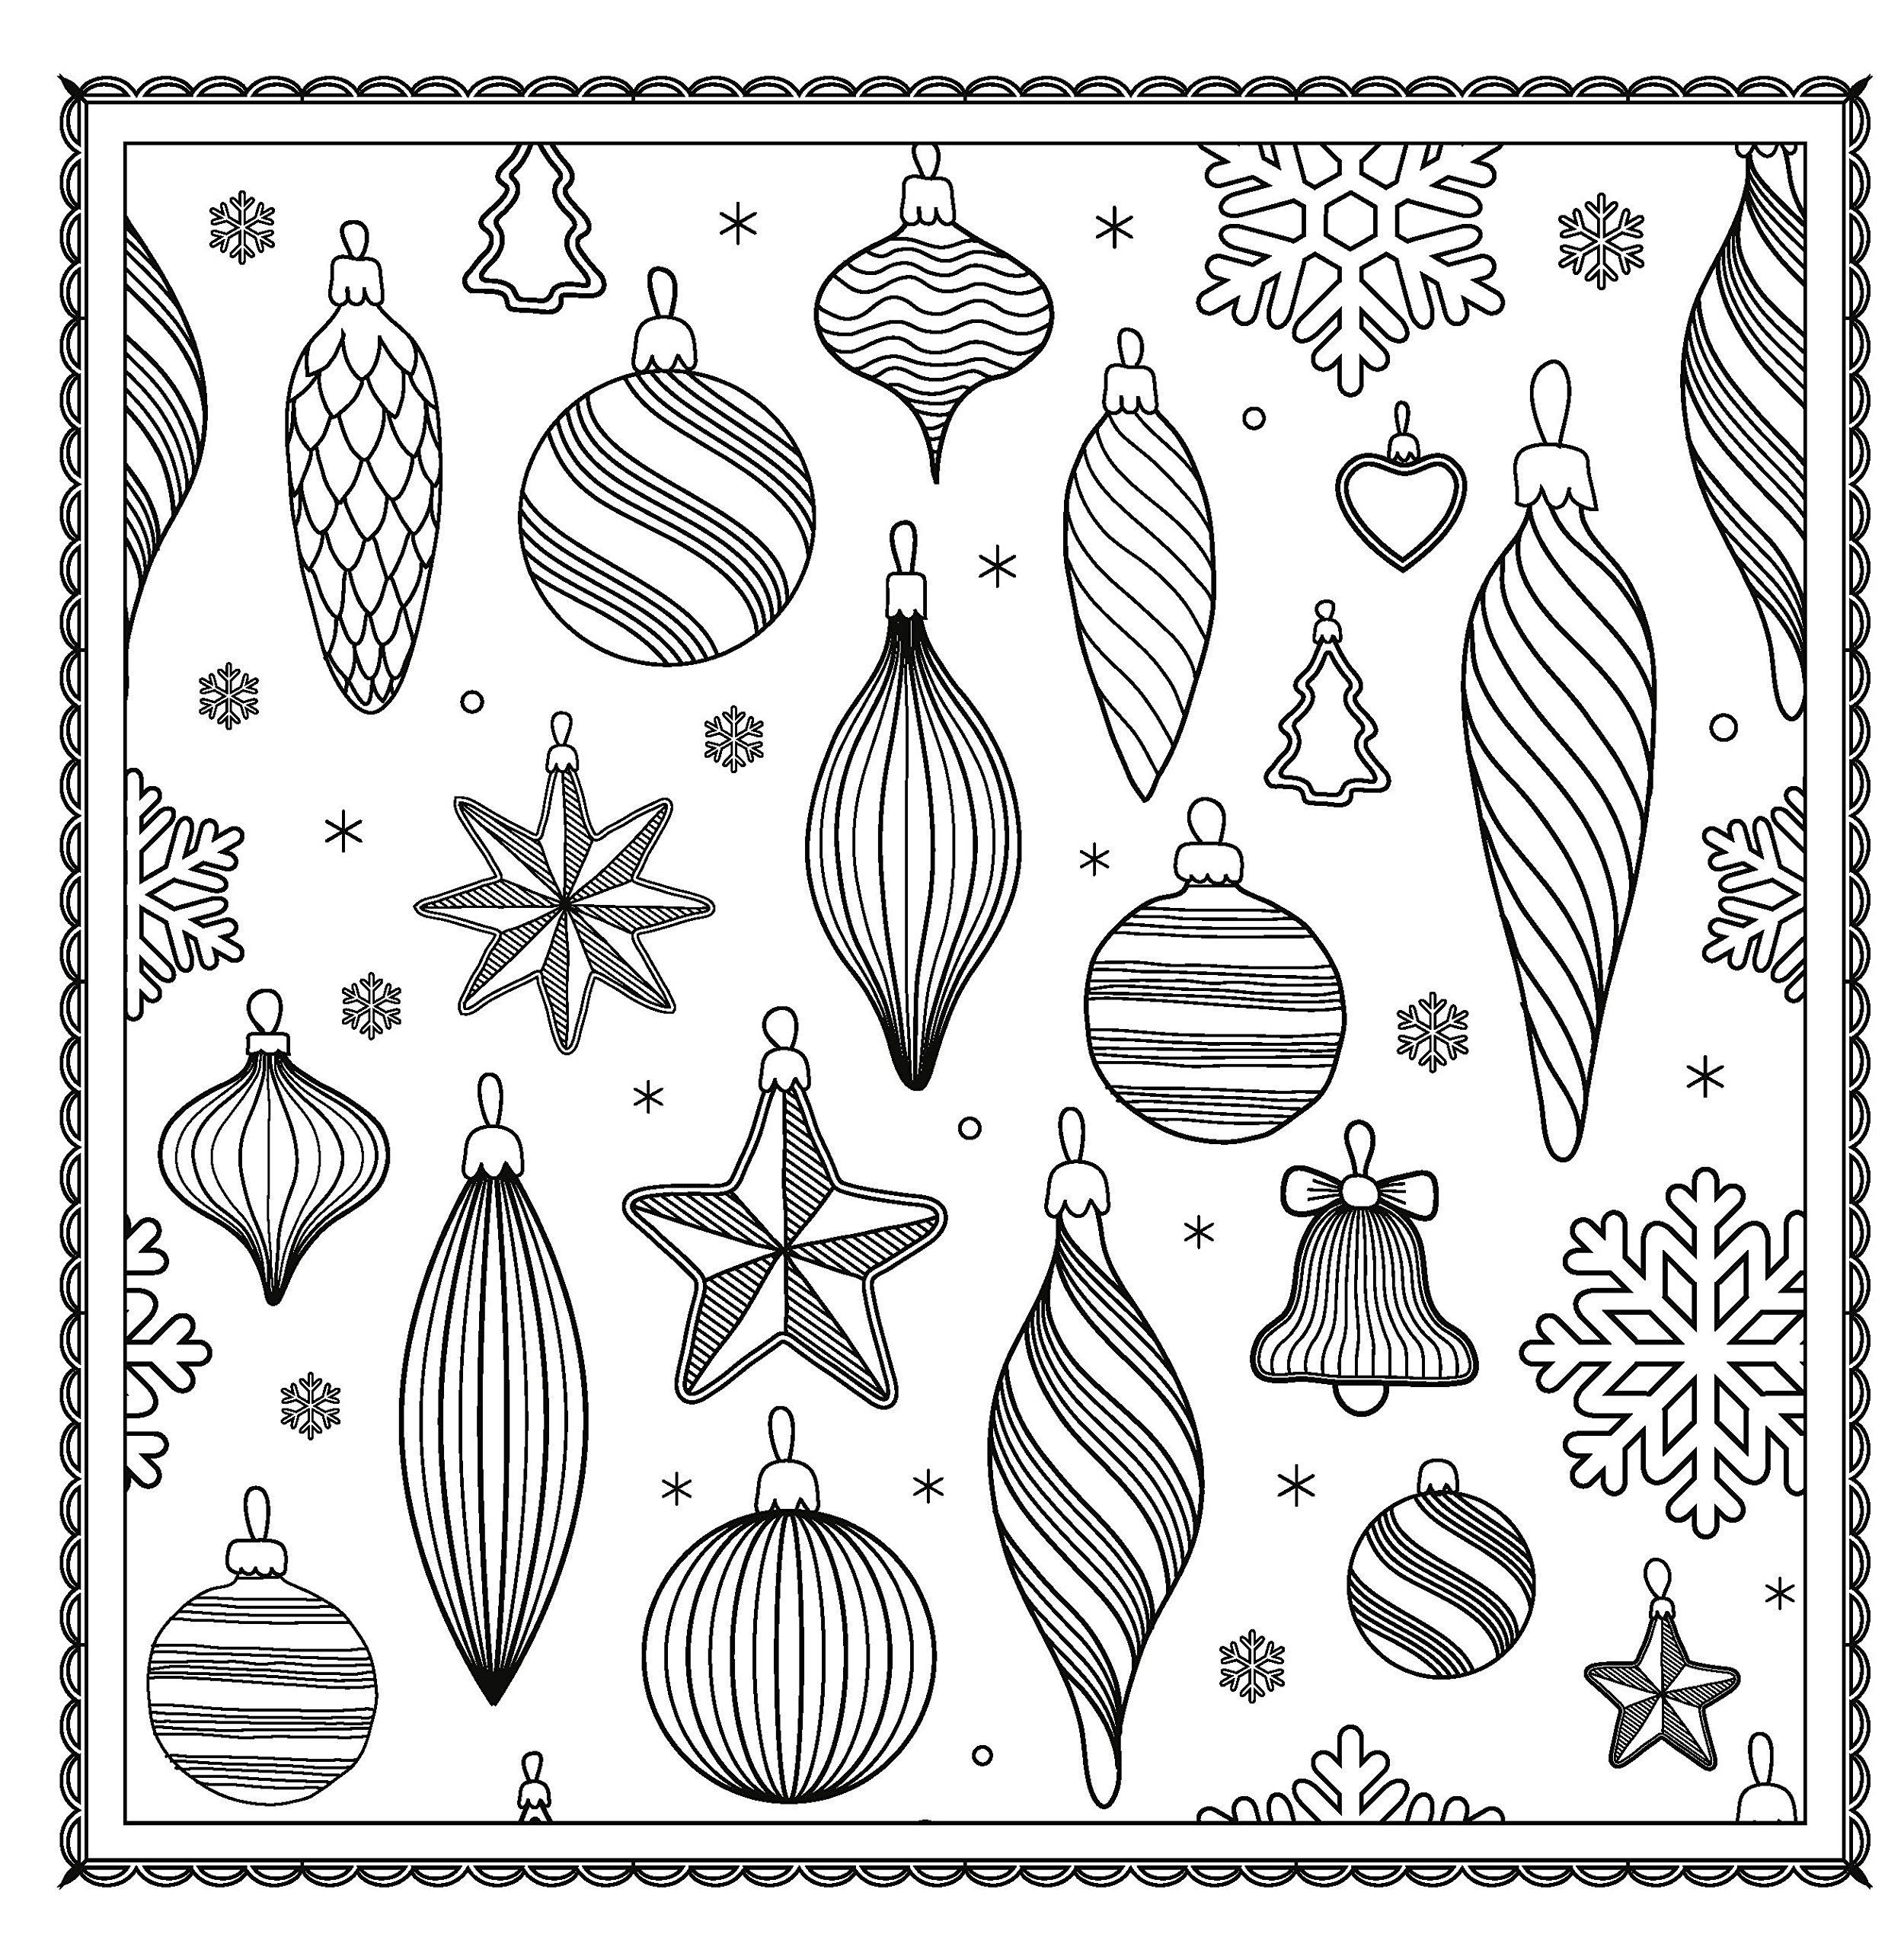 Winter Magic Beautiful Holiday Patterns Coloring Book For Adults Color Magic Arsedition 9781438007335 A Color Magic Christmas Coloring Pages Winter Magic